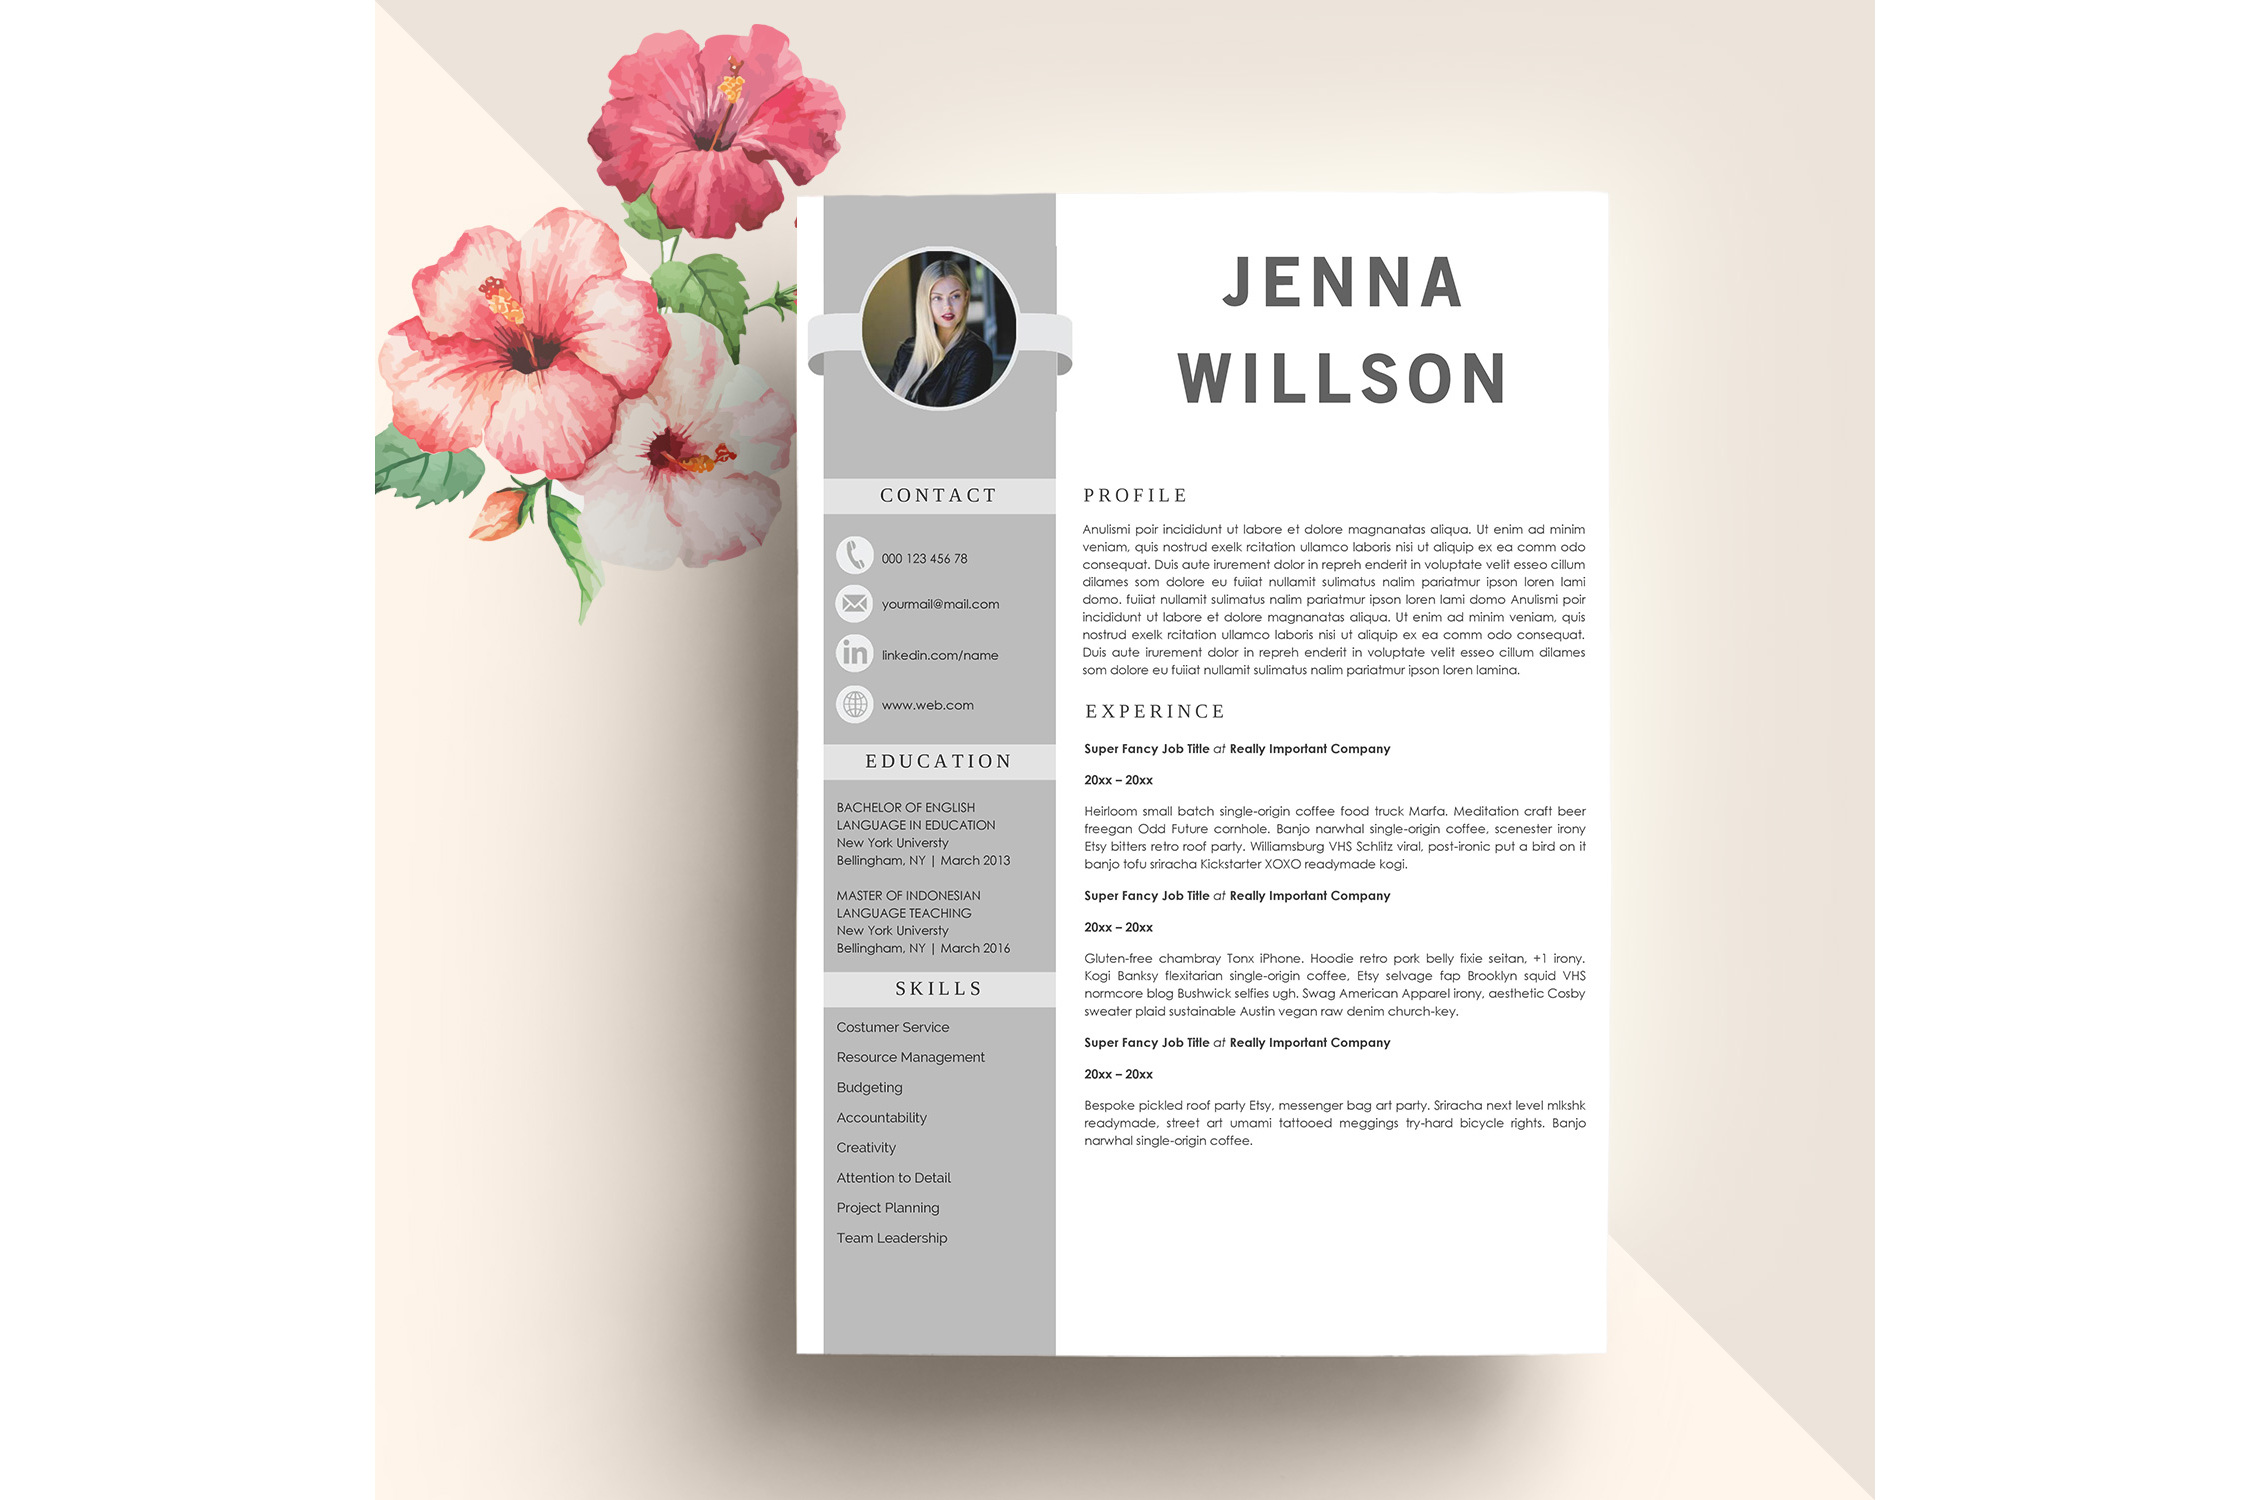 Professonal Resume Template Word example image 1